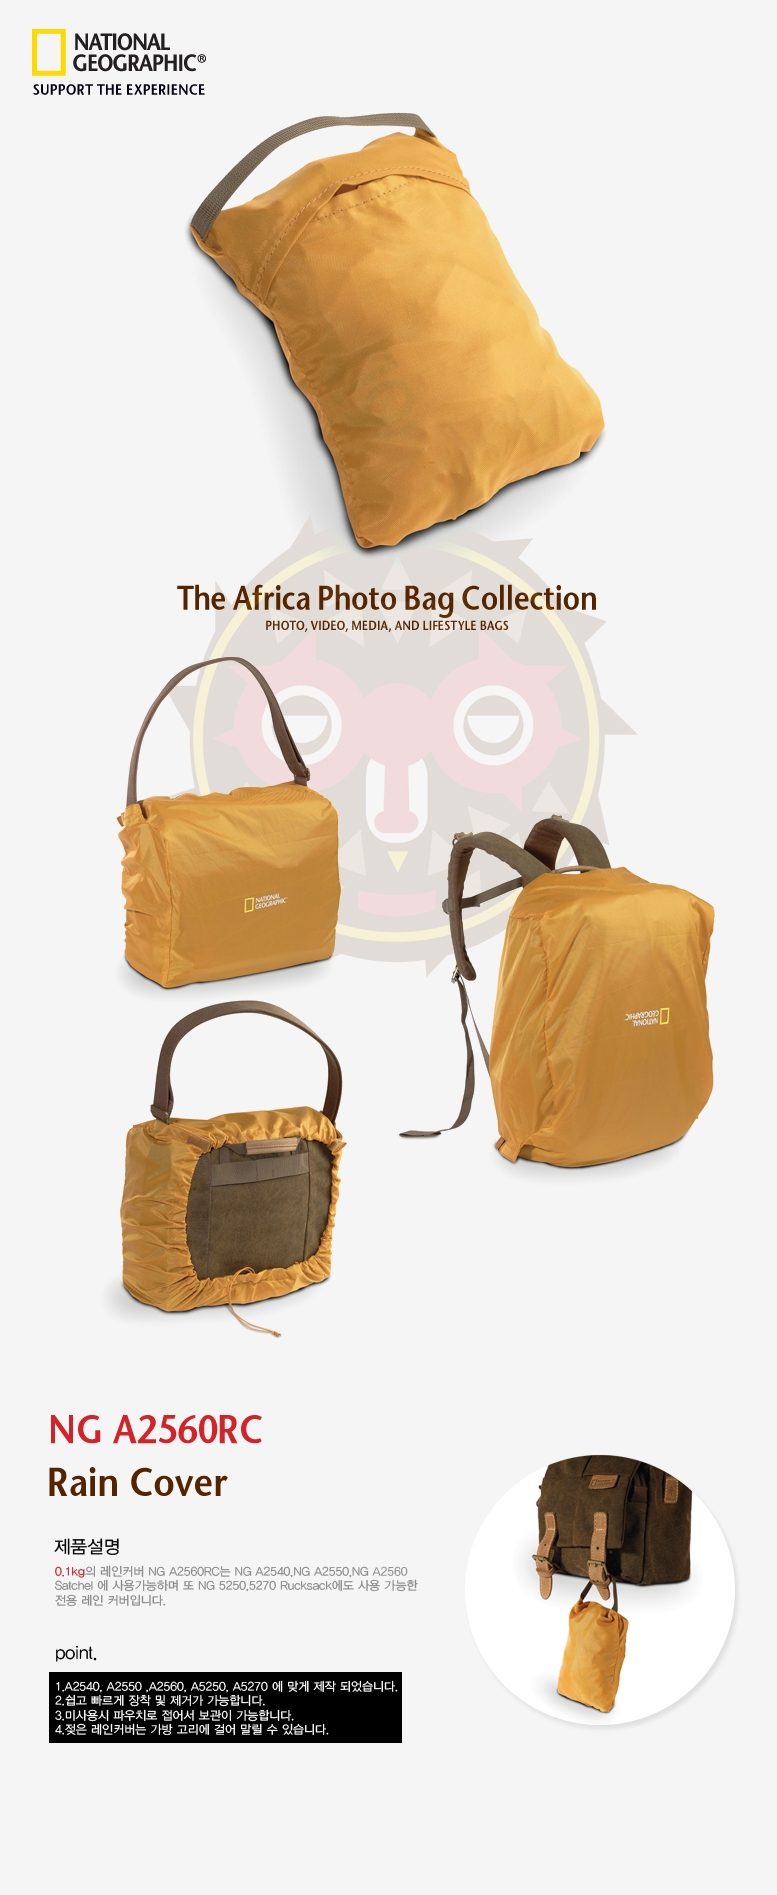 NATIONAL GEOGRAPHIC - NG A2560RC Rain Cover